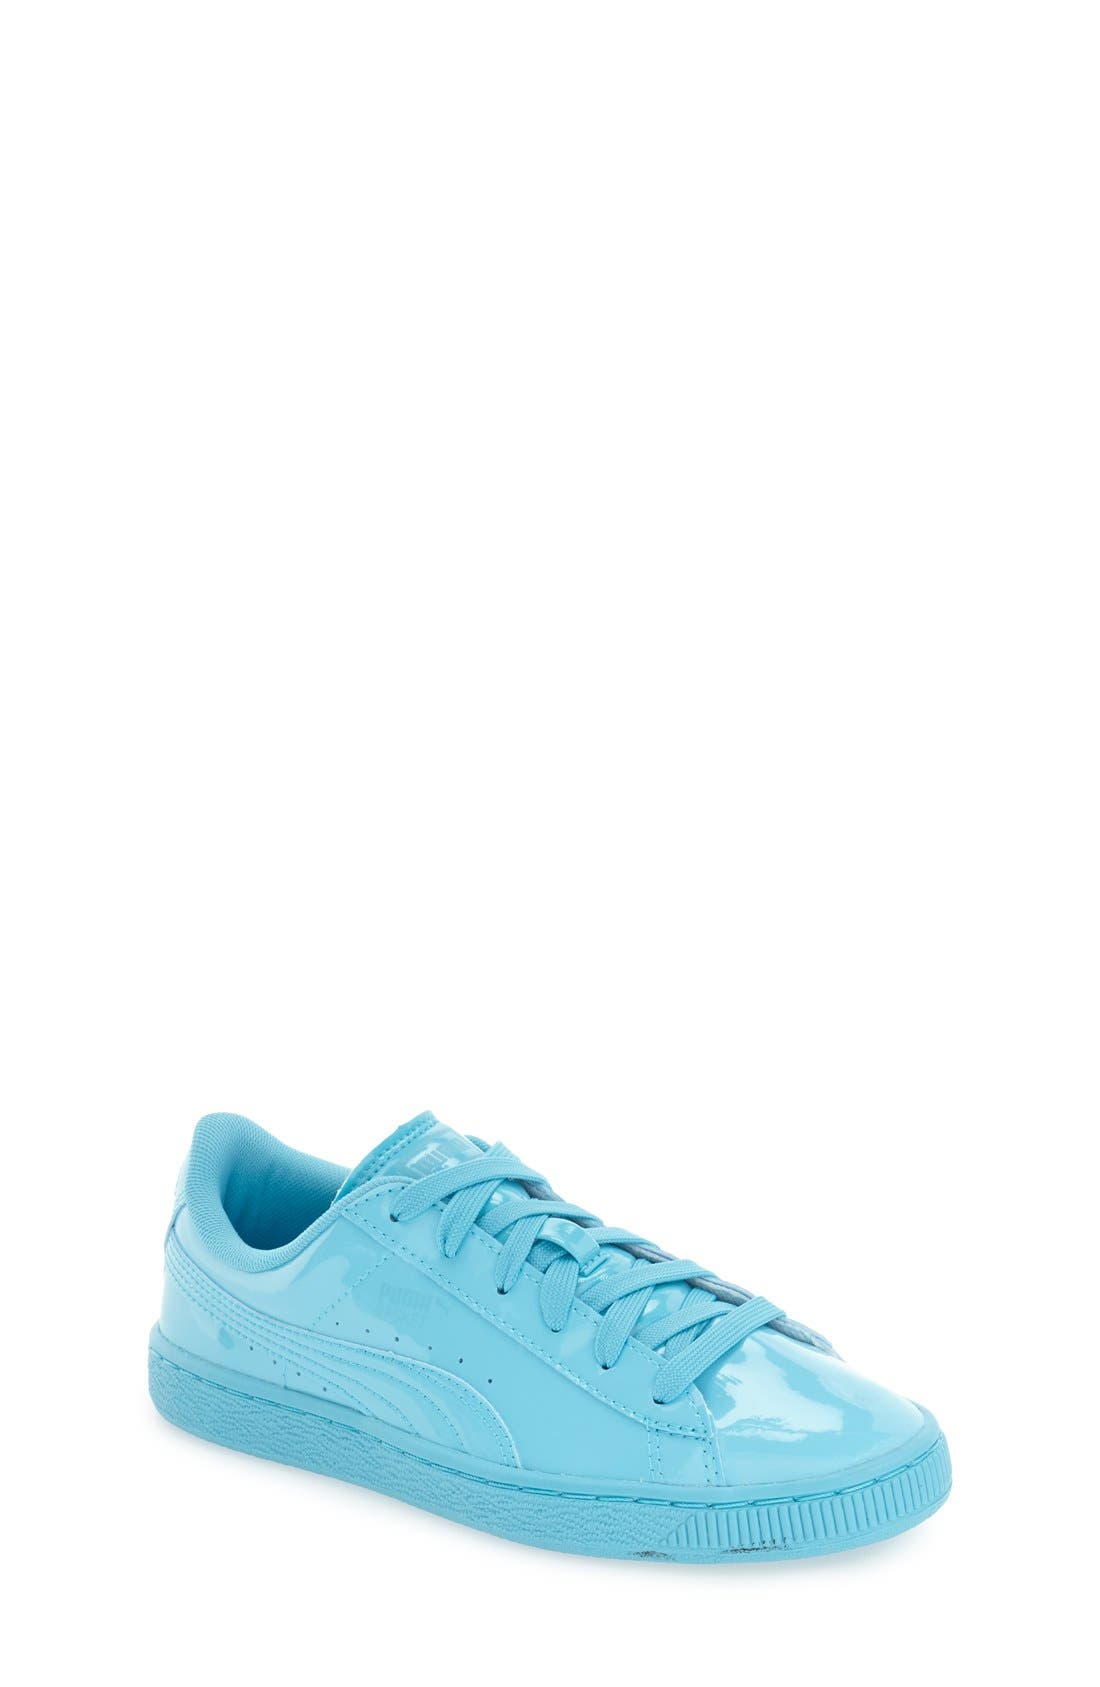 'Basket Classic' Sneaker,                             Main thumbnail 1, color,                             Blue Atoll-Blue Atoll